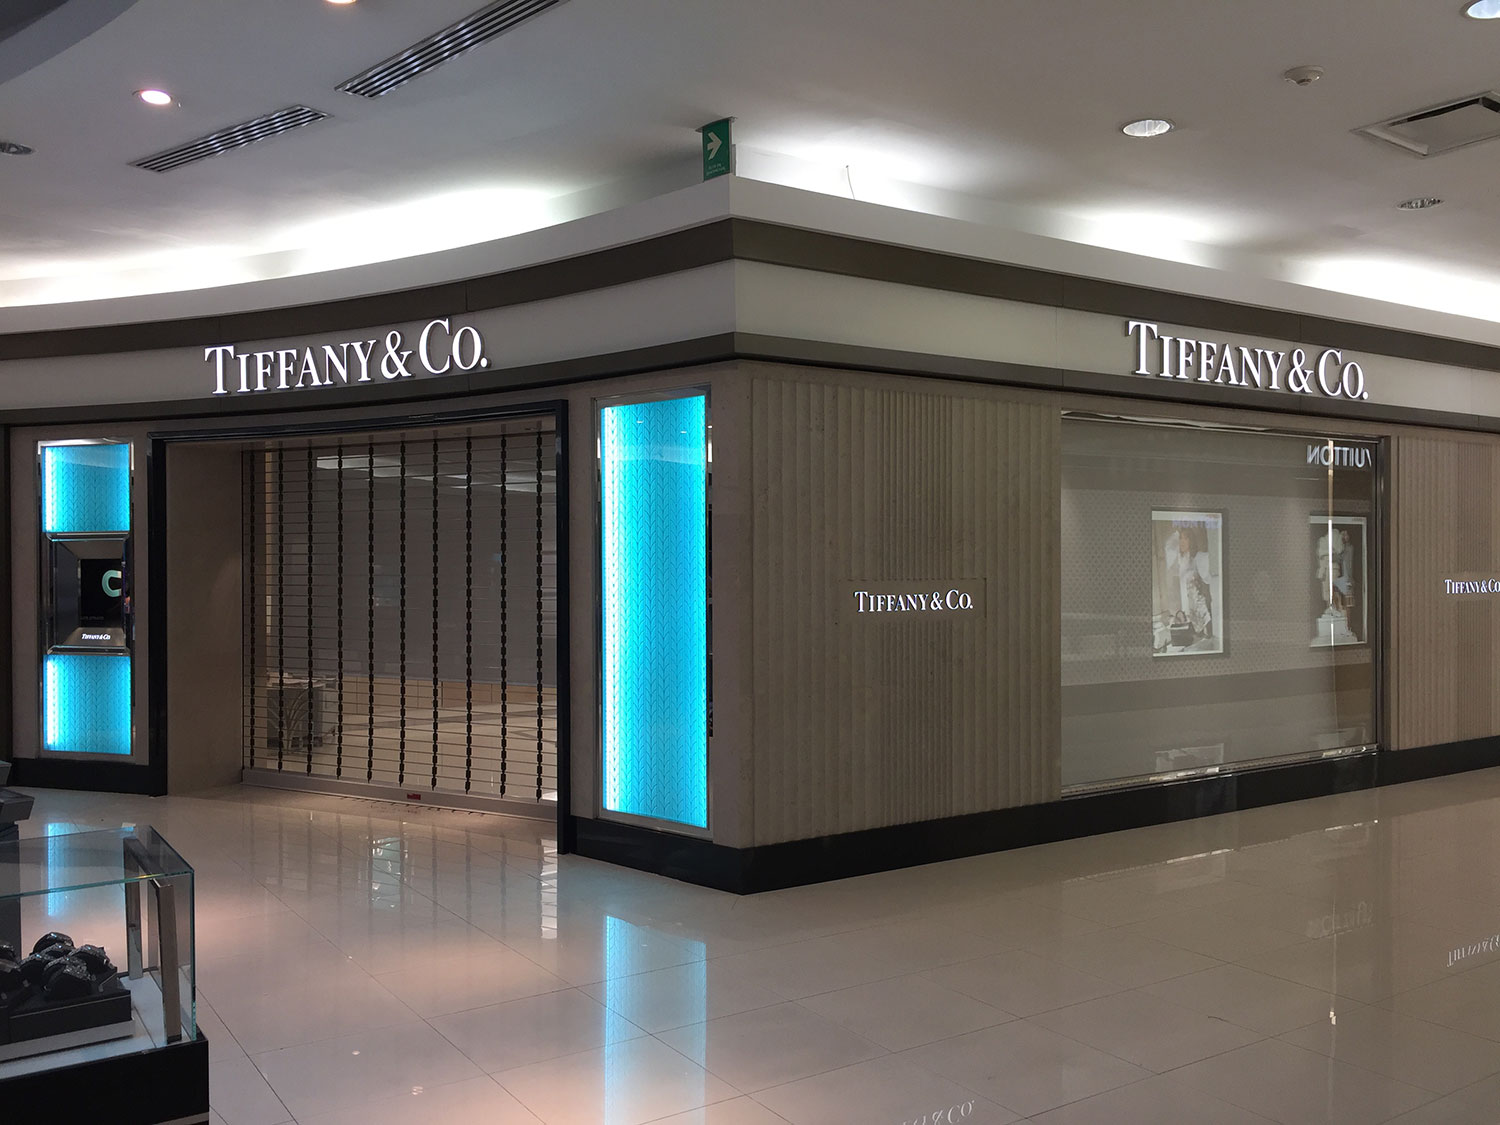 Tiffany & Co. Guadalajara